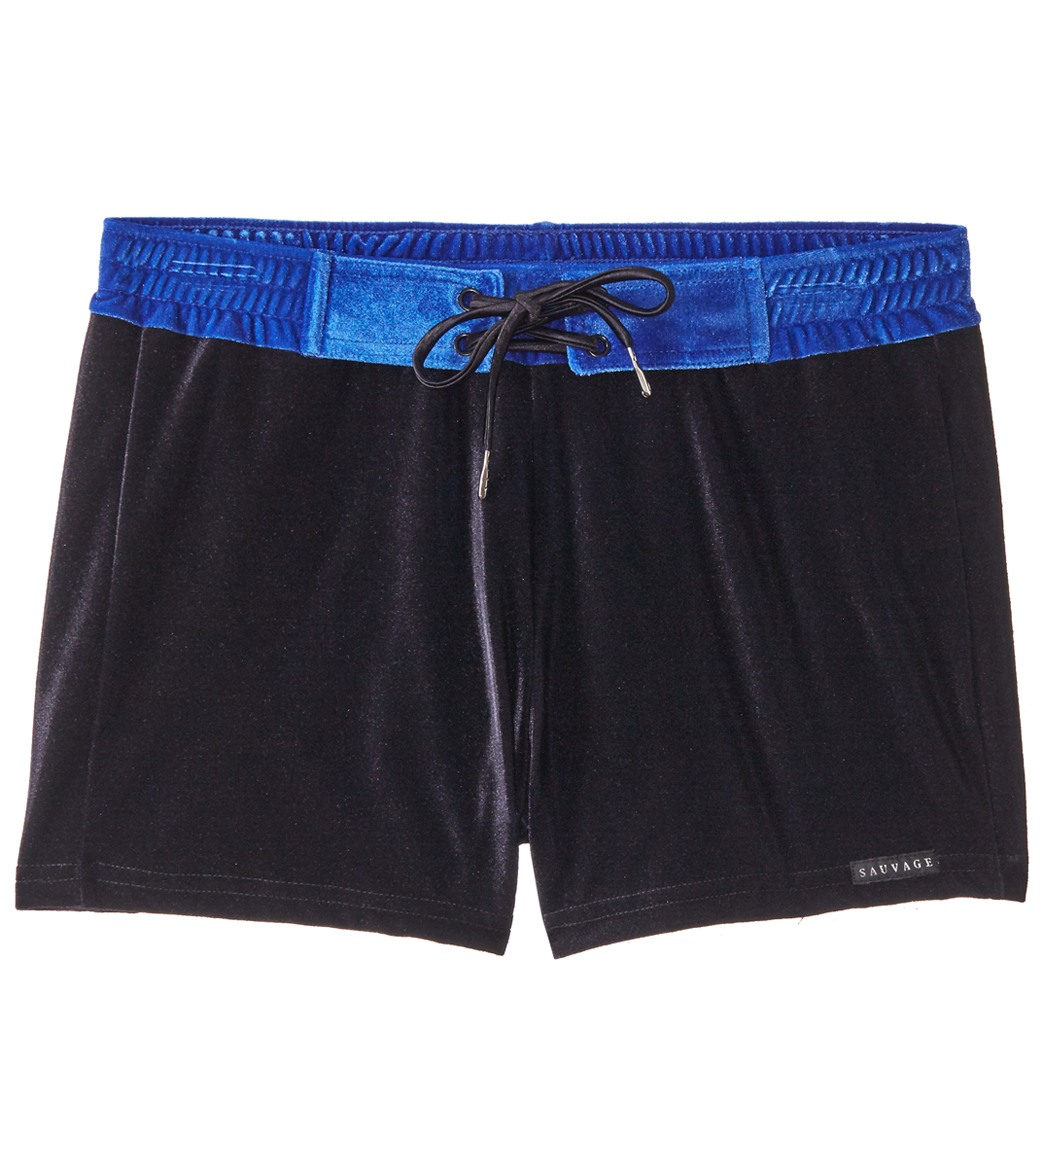 Sauvage Velvet Riviera Swim Trunk Royal//Black